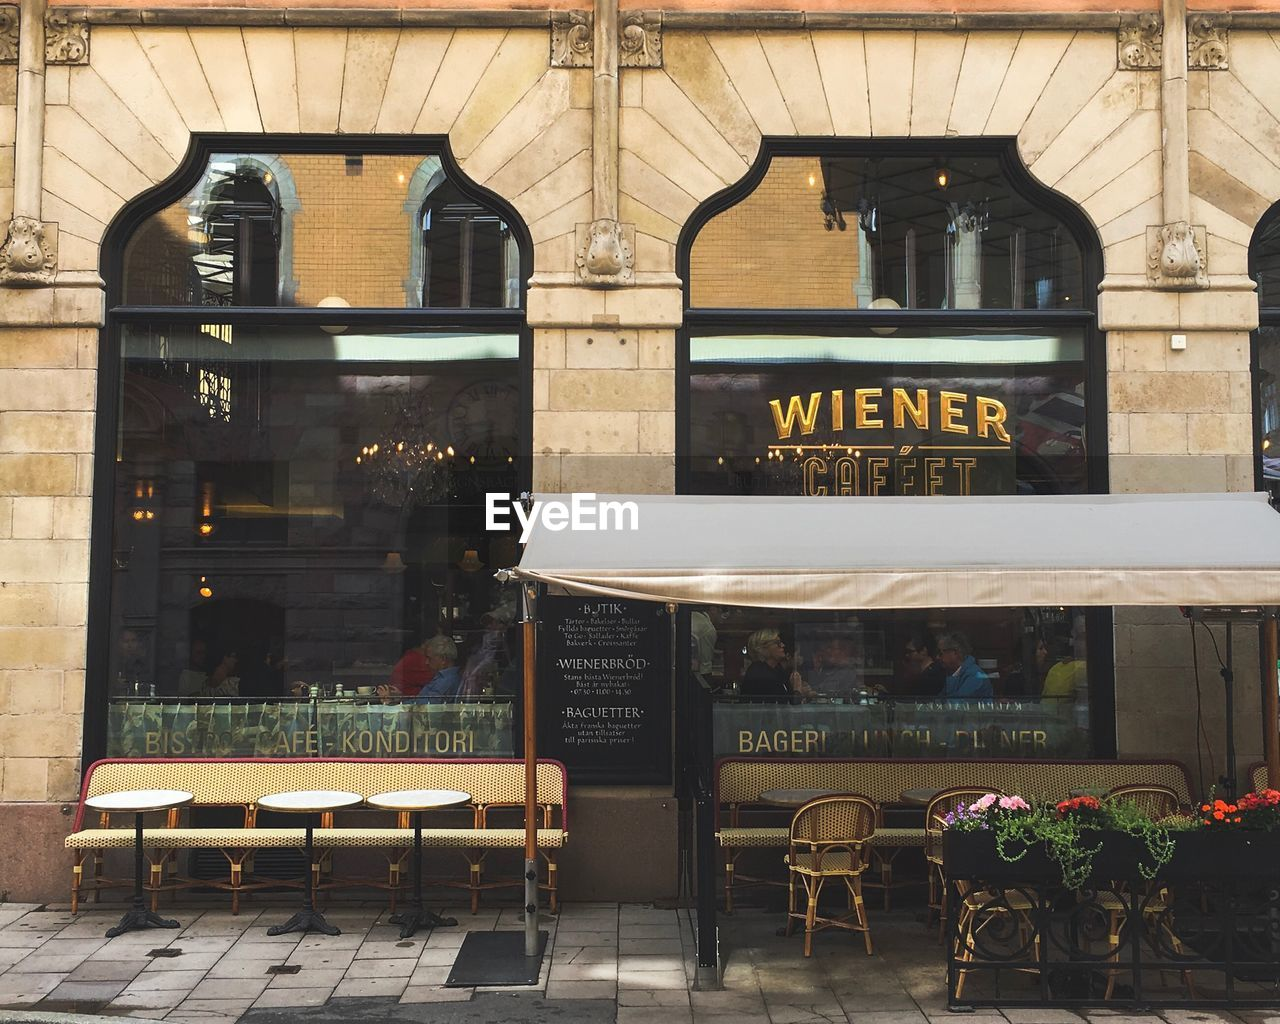 architecture, business, seat, building exterior, cafe, chair, built structure, restaurant, text, sidewalk cafe, window, glass - material, table, city, day, western script, communication, building, store, transparent, outdoors, coffee shop